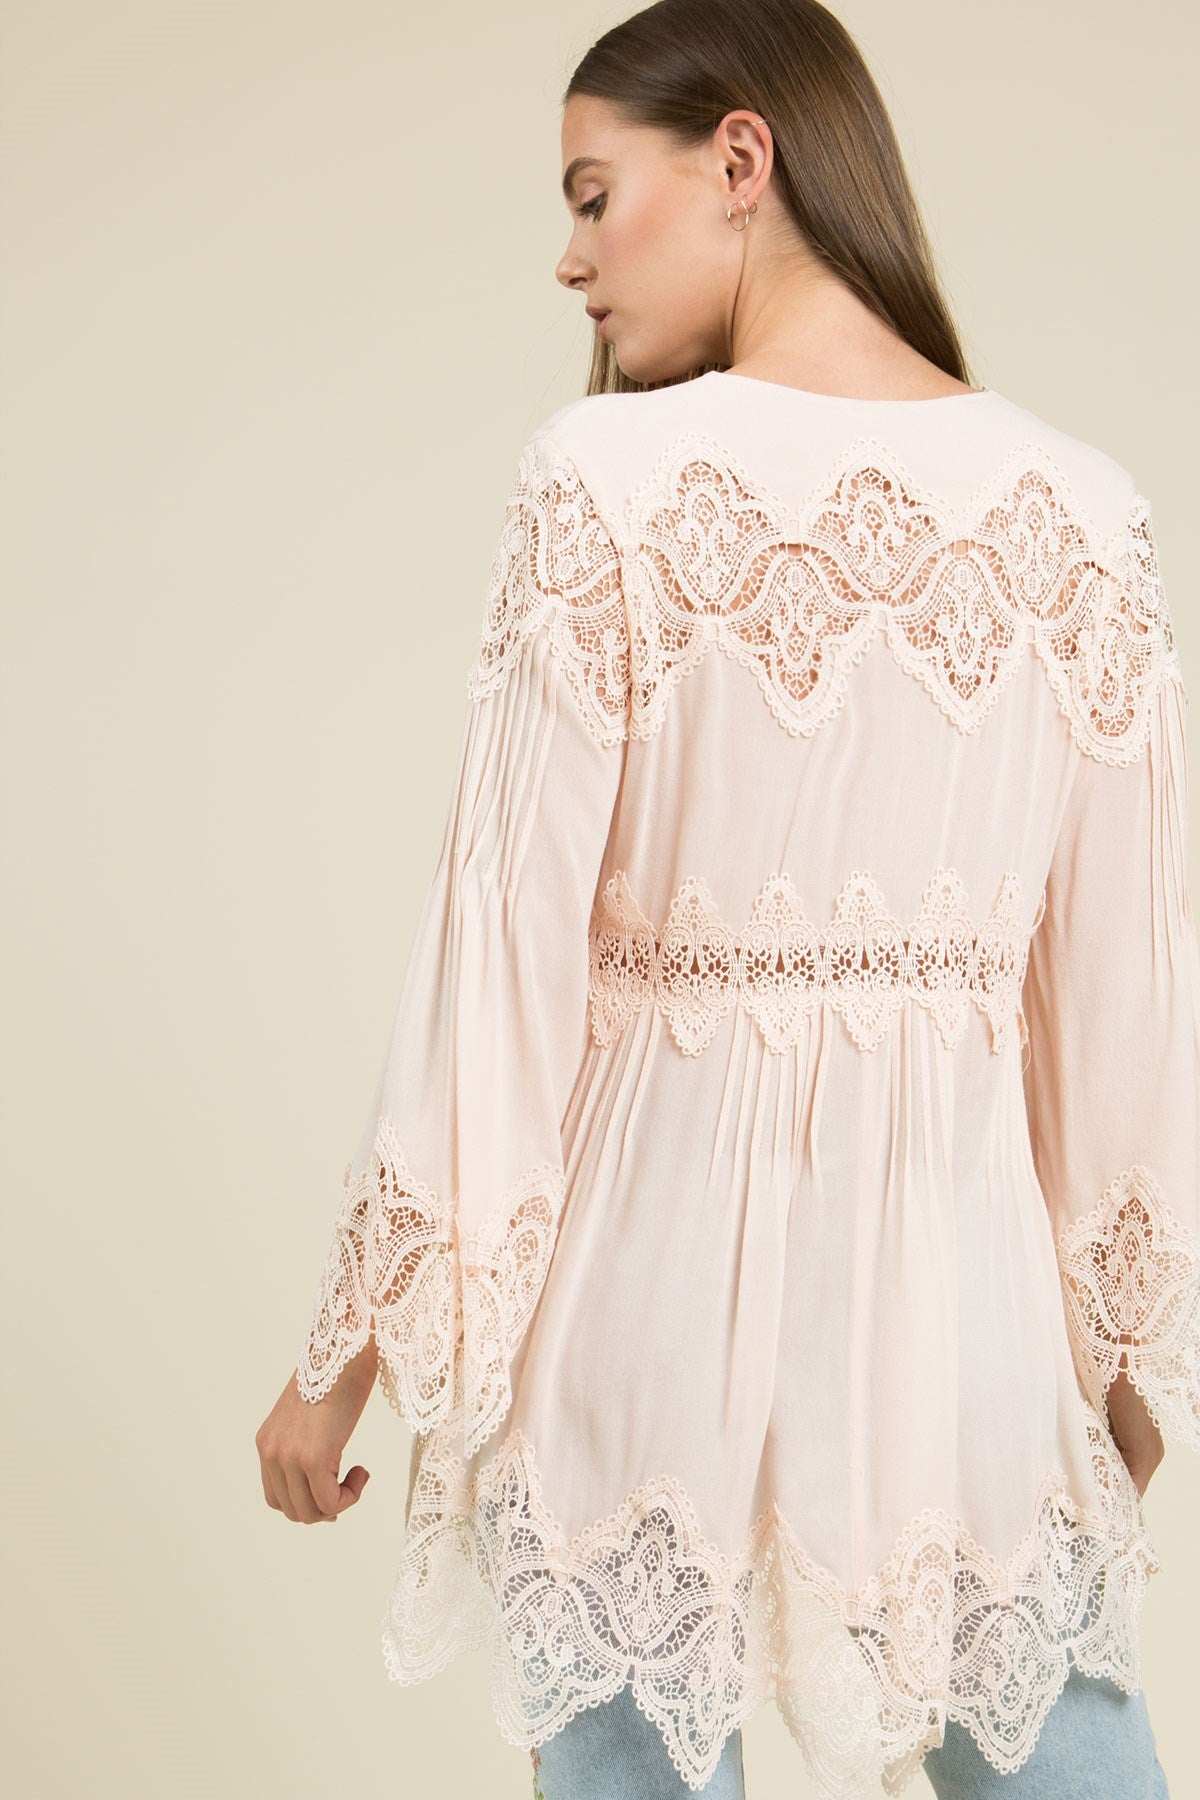 Back view young woman wearing pink empire waist lace trim tunic top